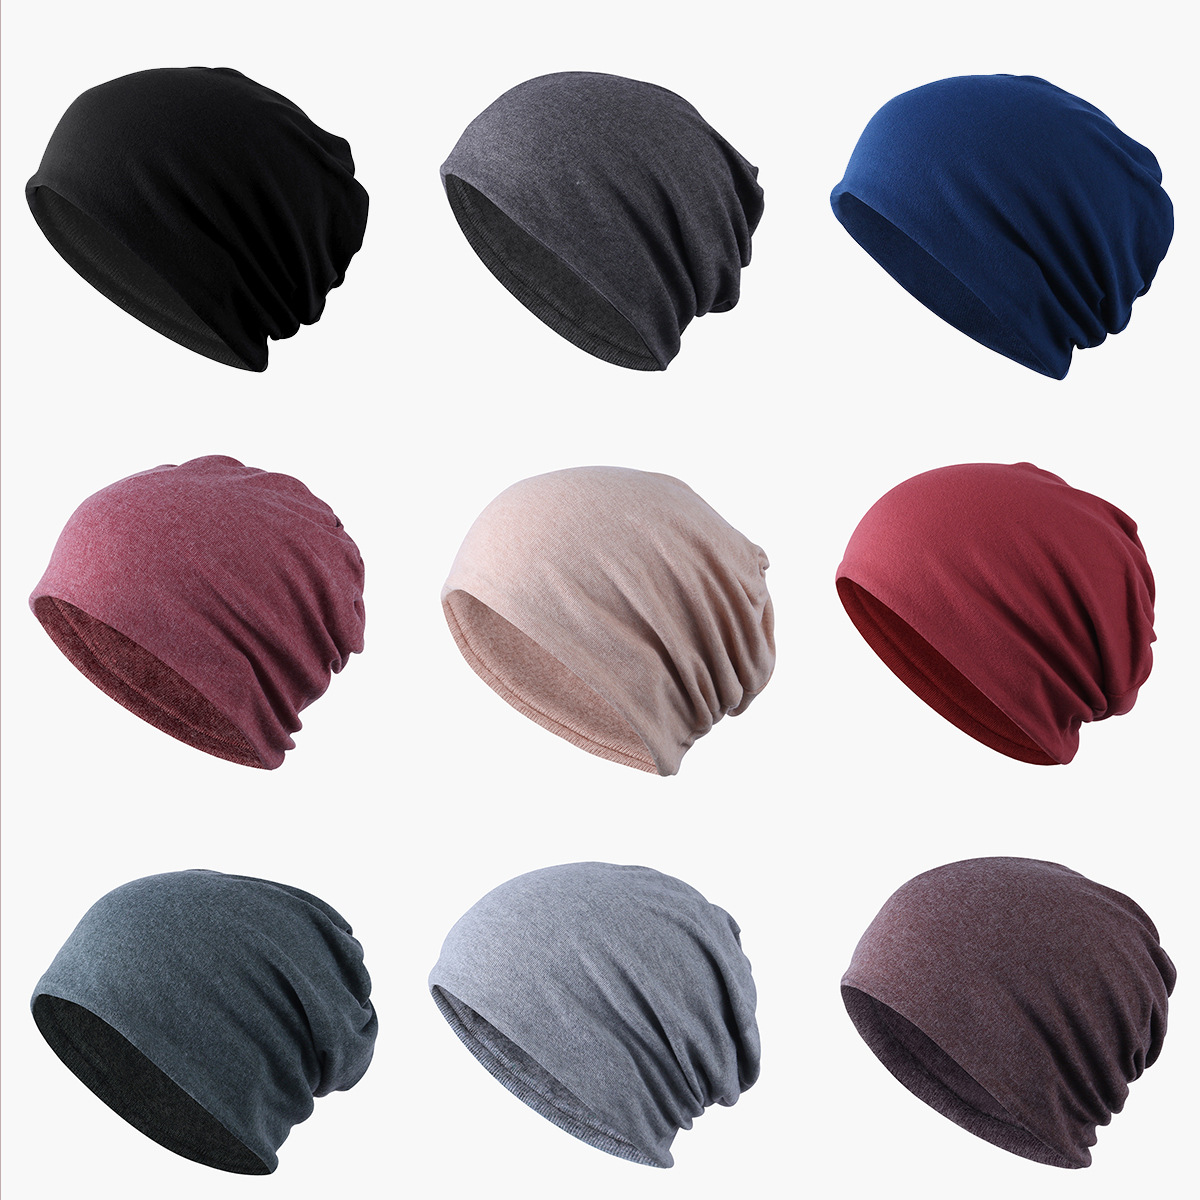 Hats Bonnet-Hat Women Beanies Knit Unisex Cotton Solid-Color Layer Fabric-Caps Hedging-Cap title=